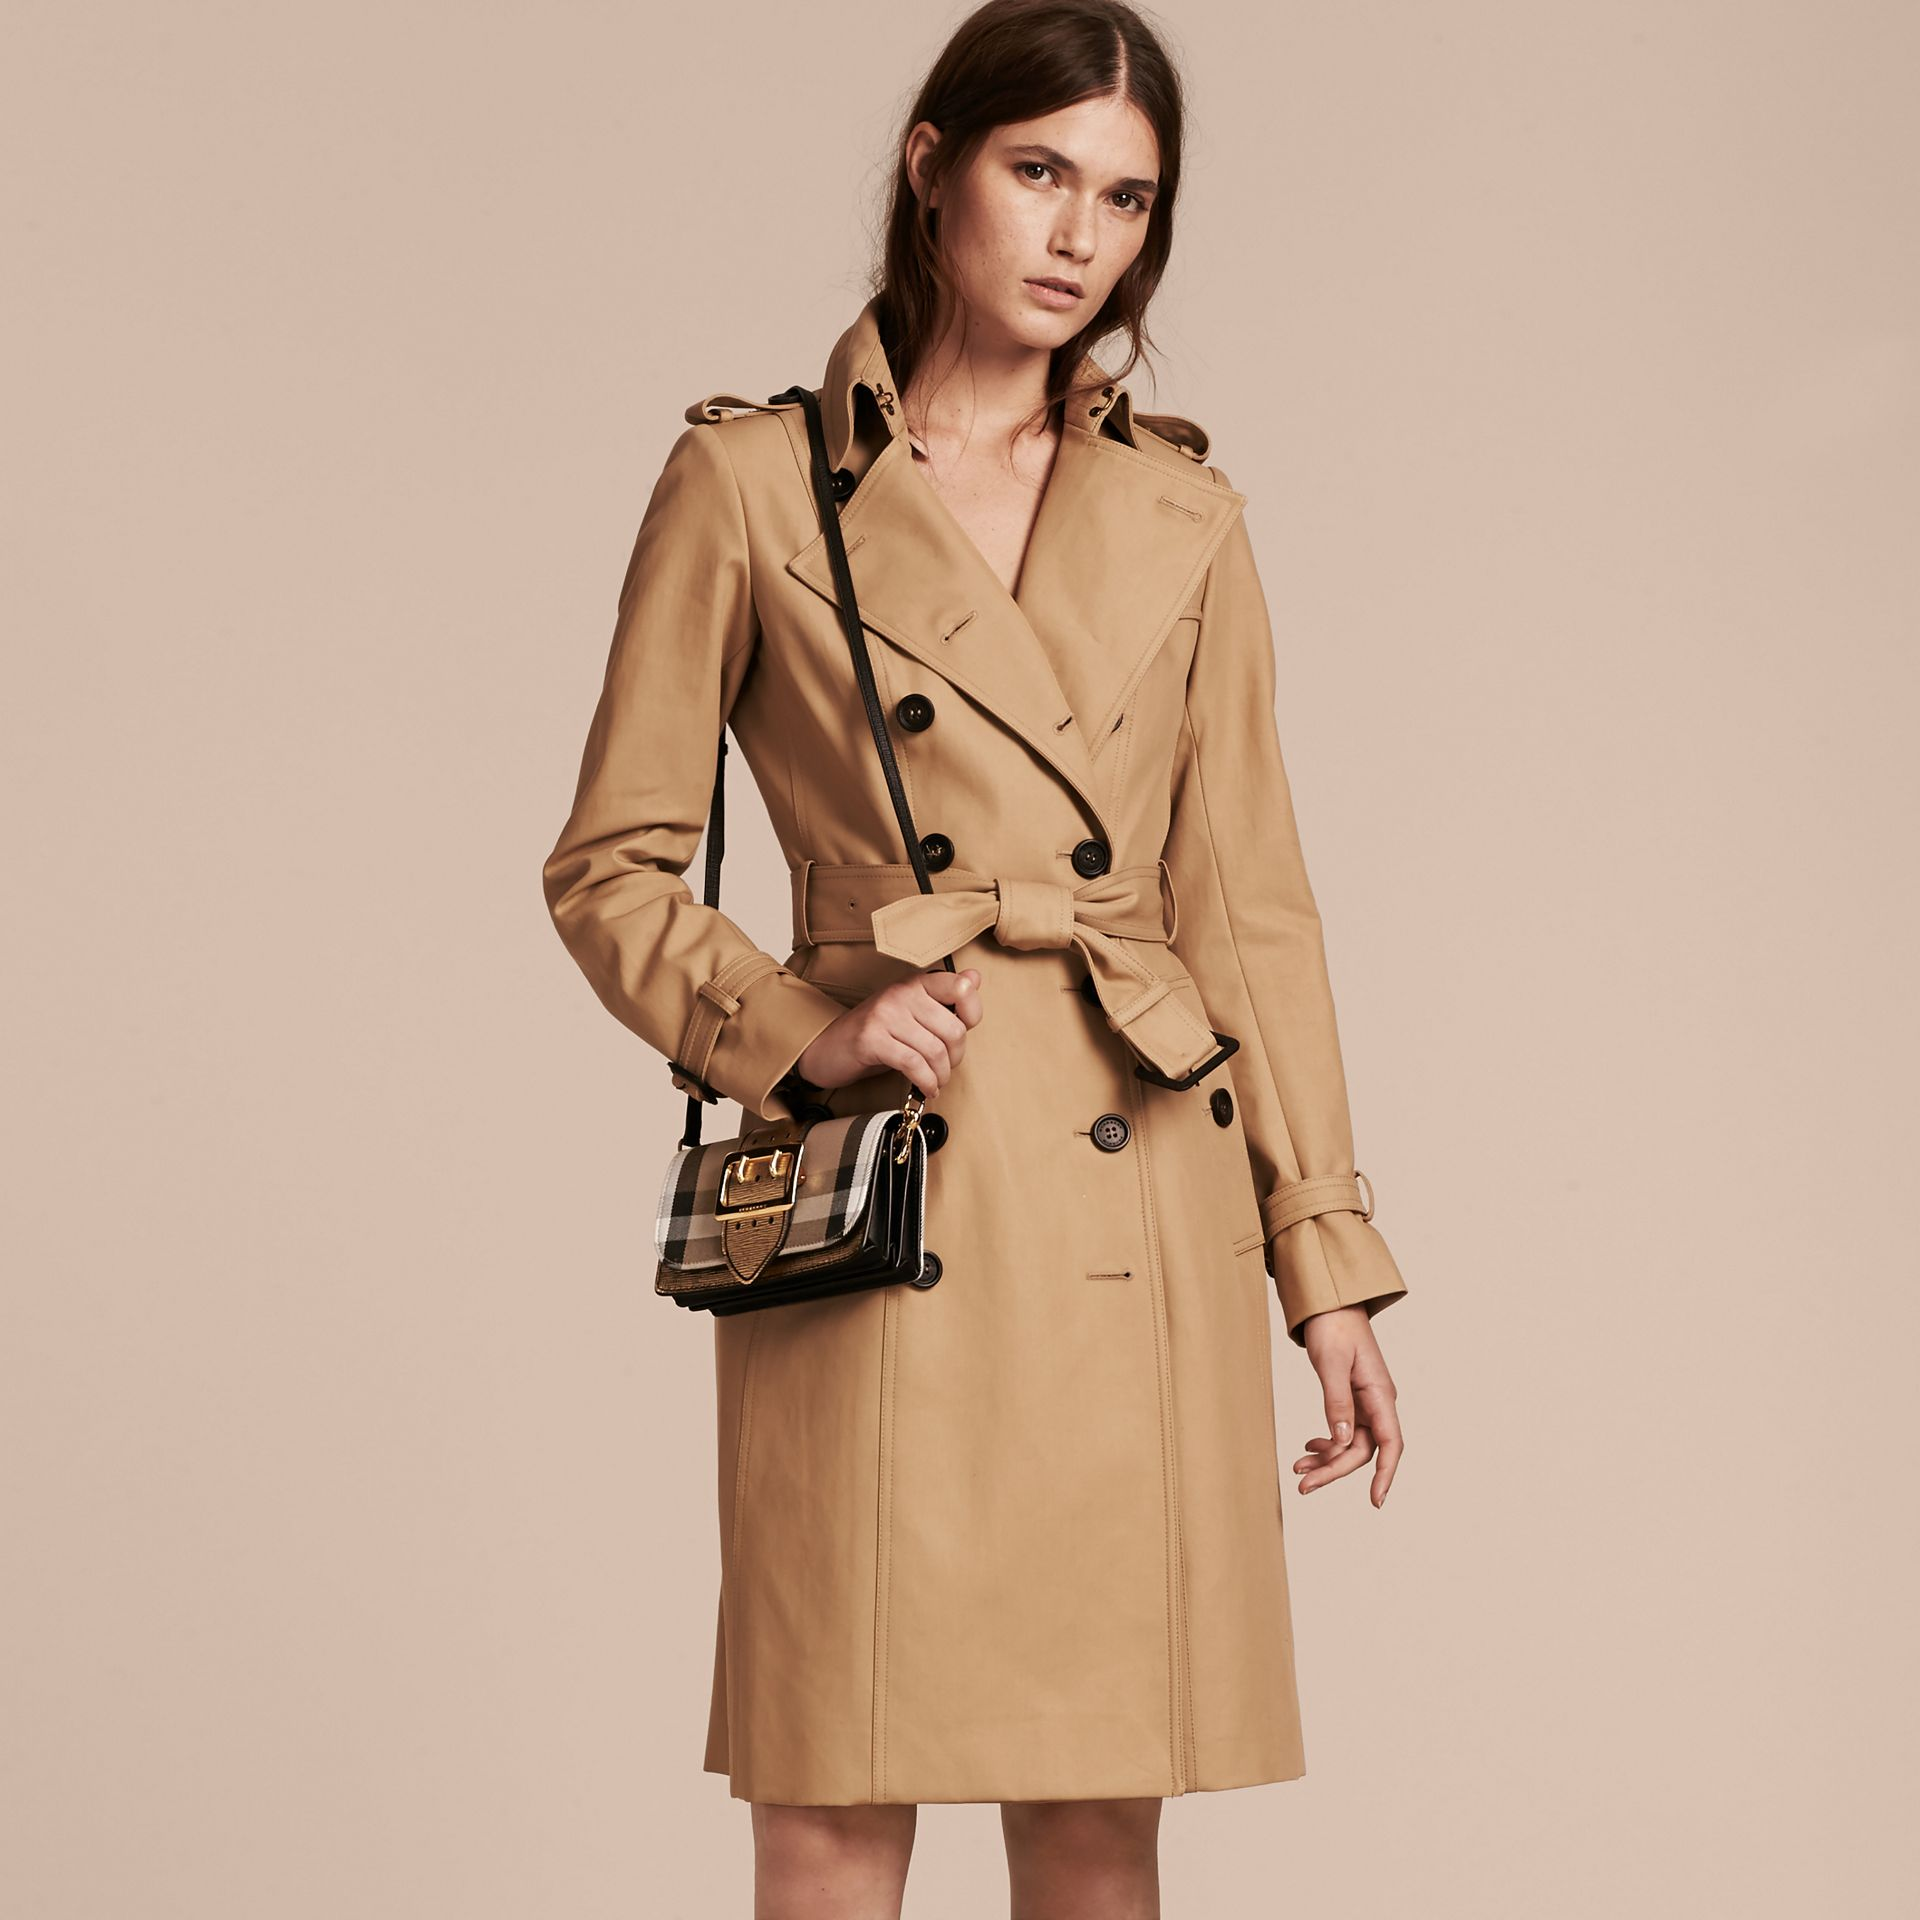 The Small Buckle Bag in House Check and Leather in Gold - Women | Burberry Canada - gallery image 3